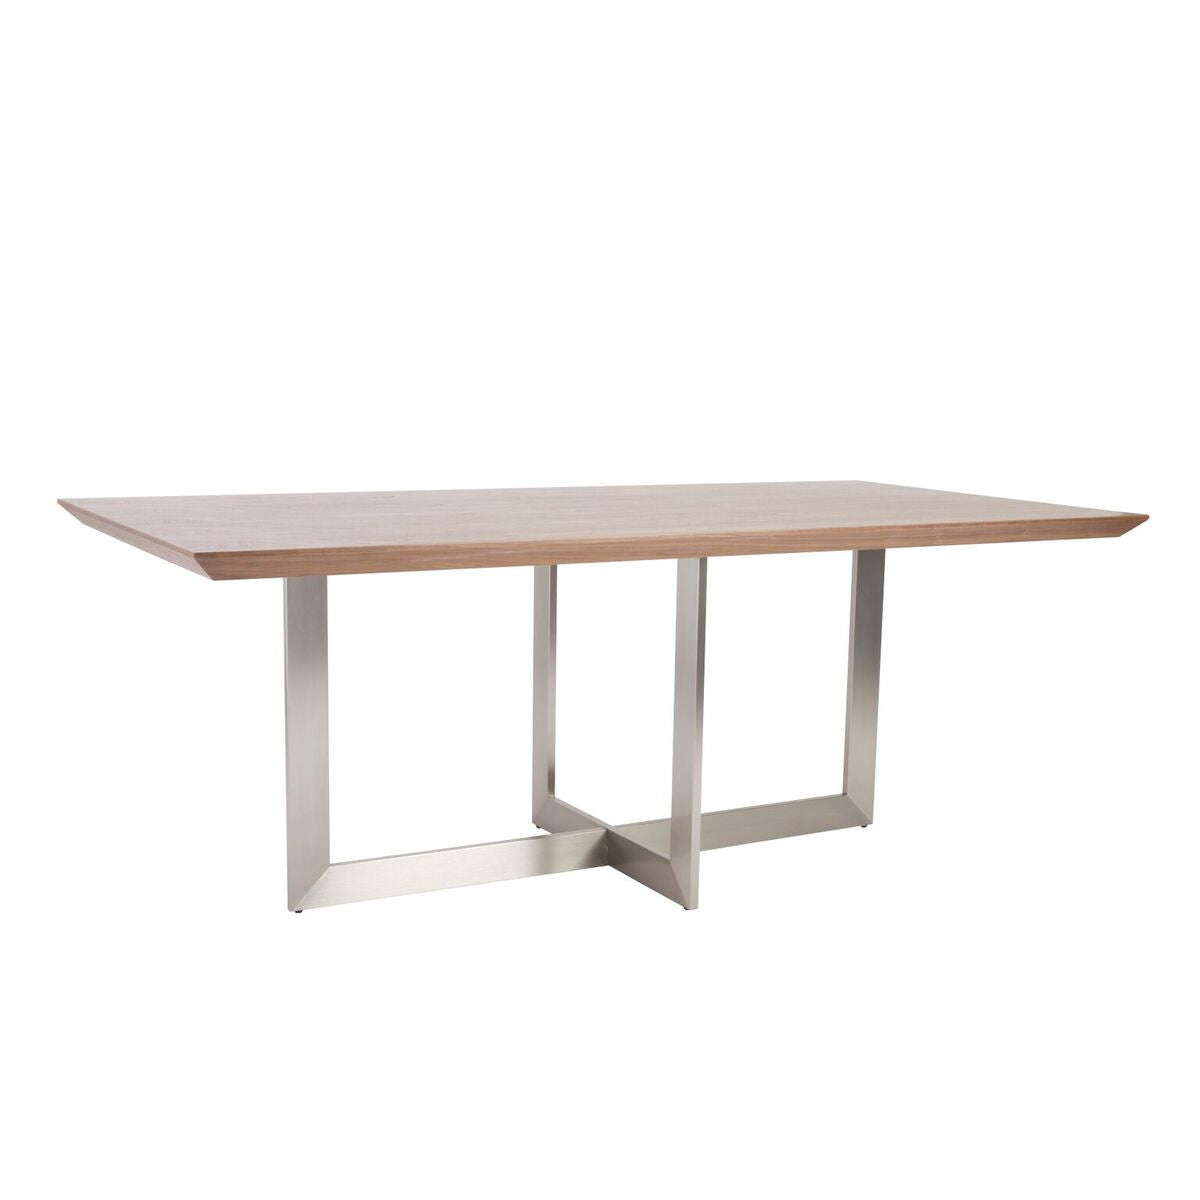 "Walnut & Brushed Stainless 79"" Conference / Meeeting Table"